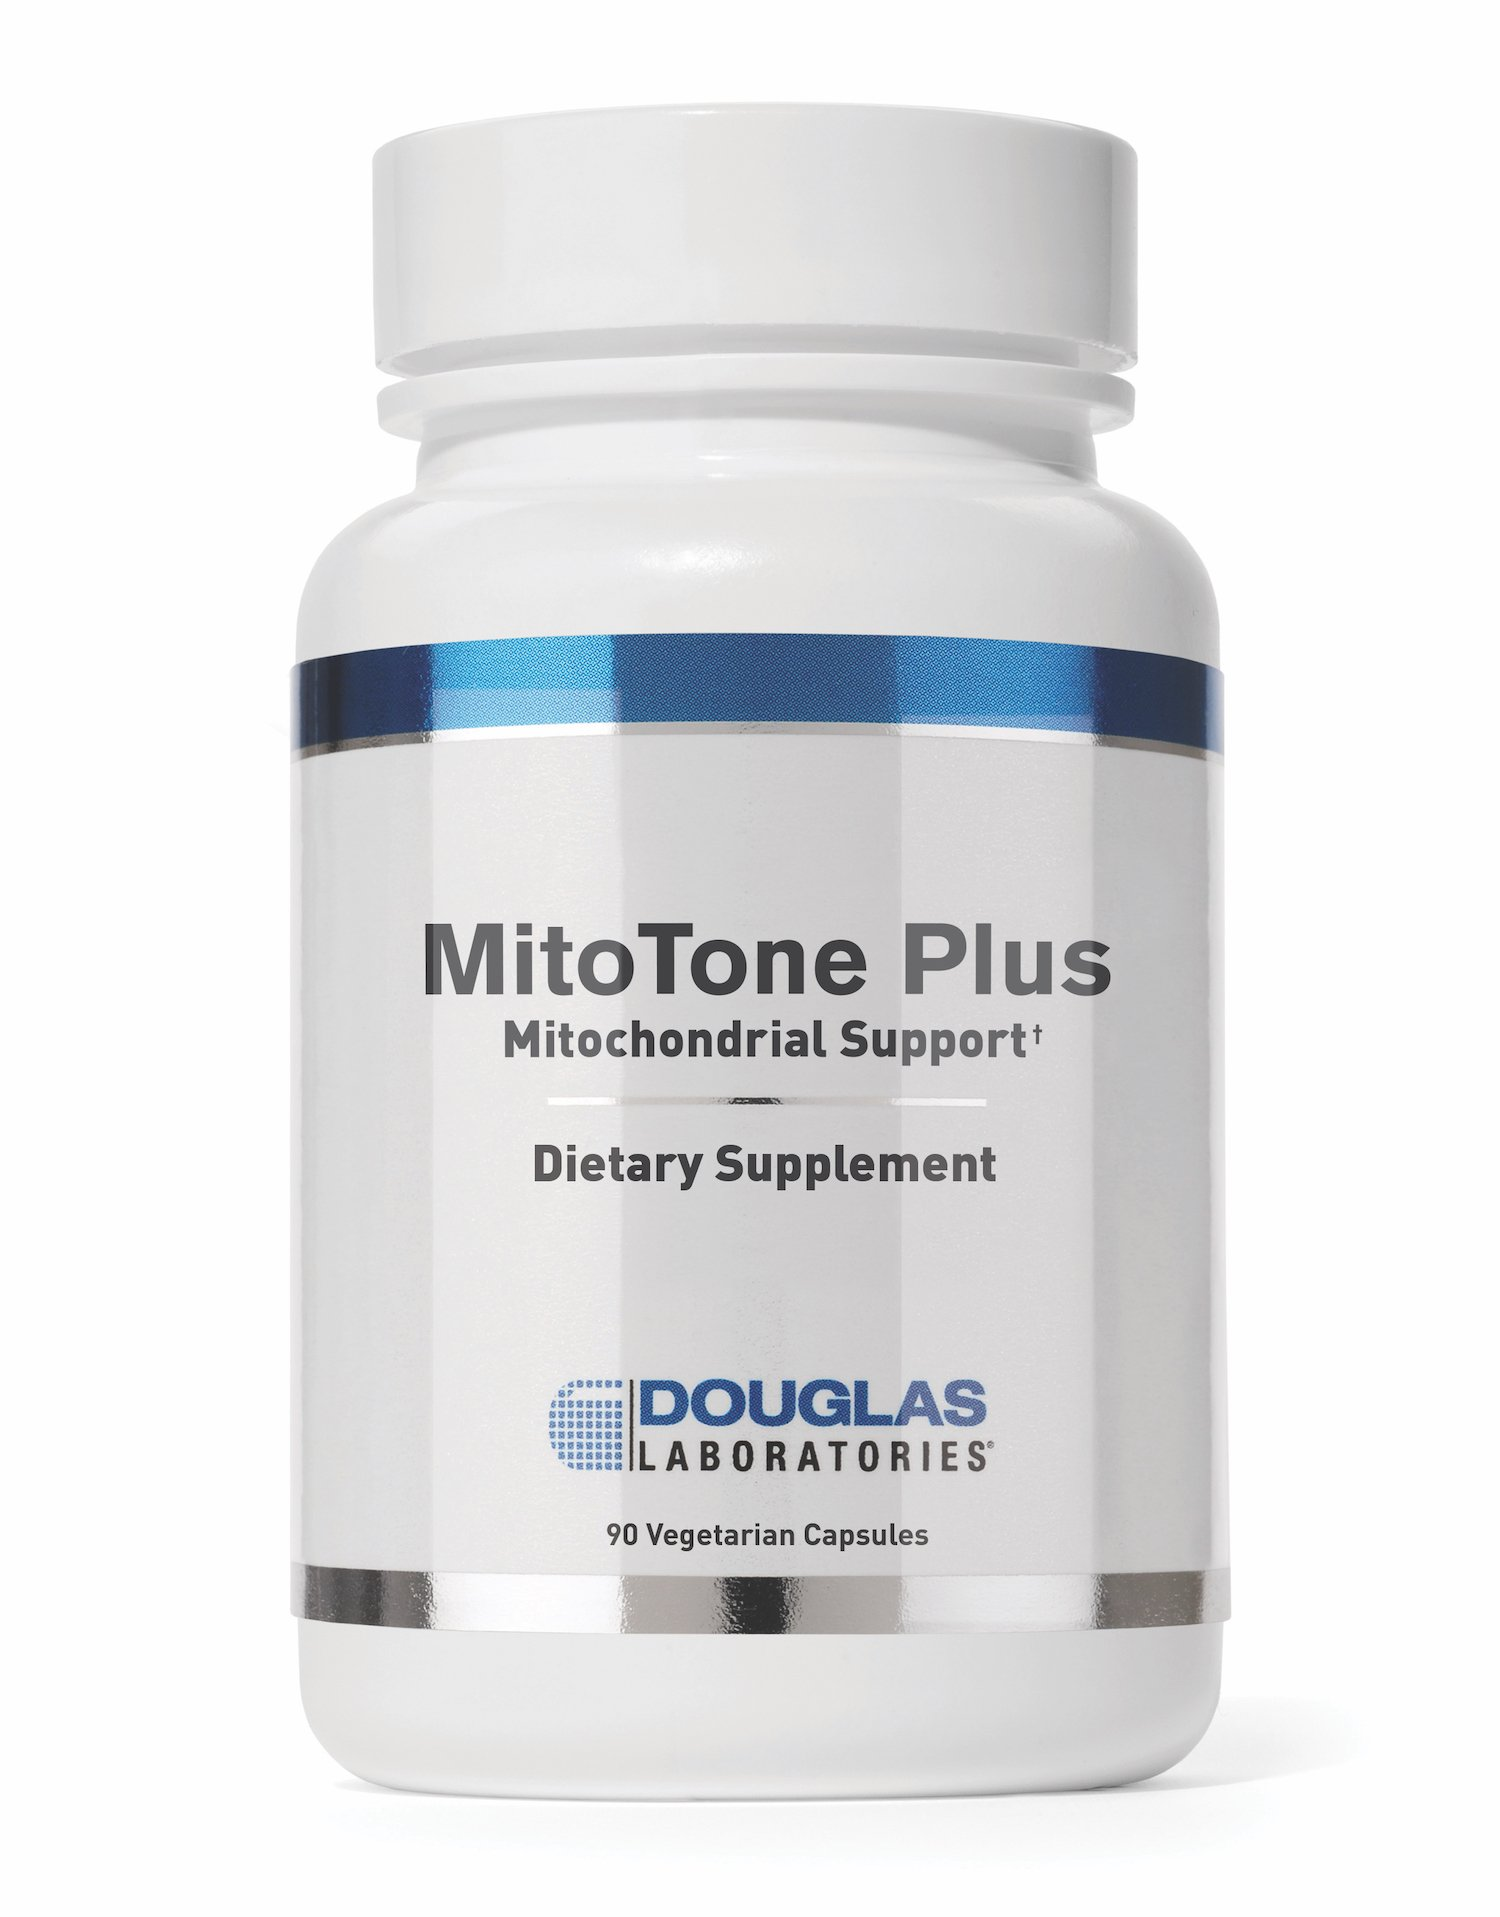 Douglas Laboratories - MitoTone Plus - Mitochondrial Support - 90 Capsules